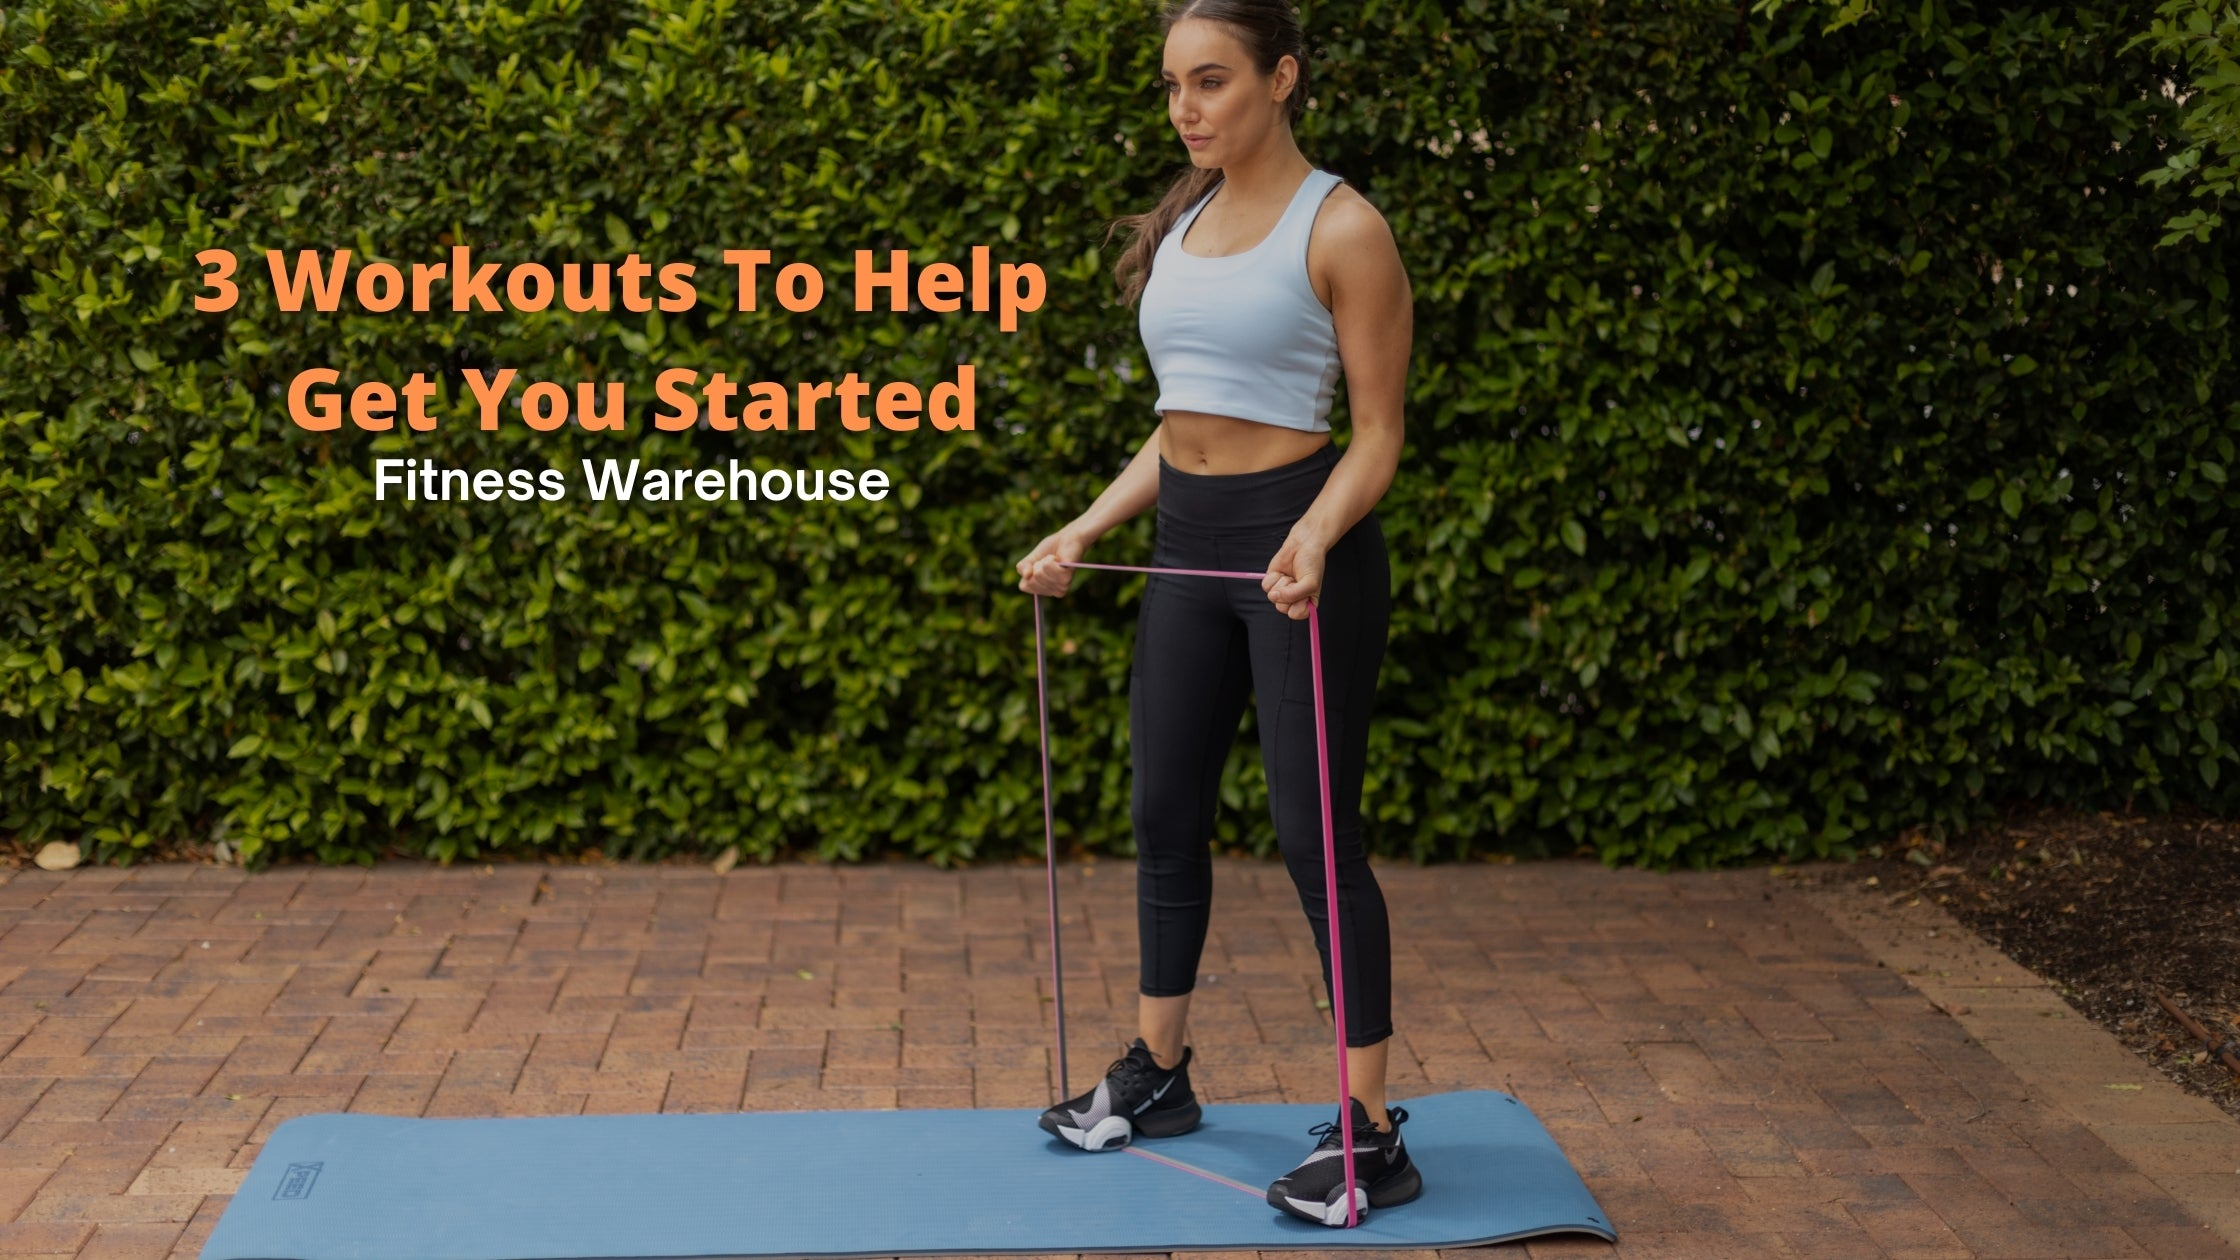 3 Workouts To Help Get You Started